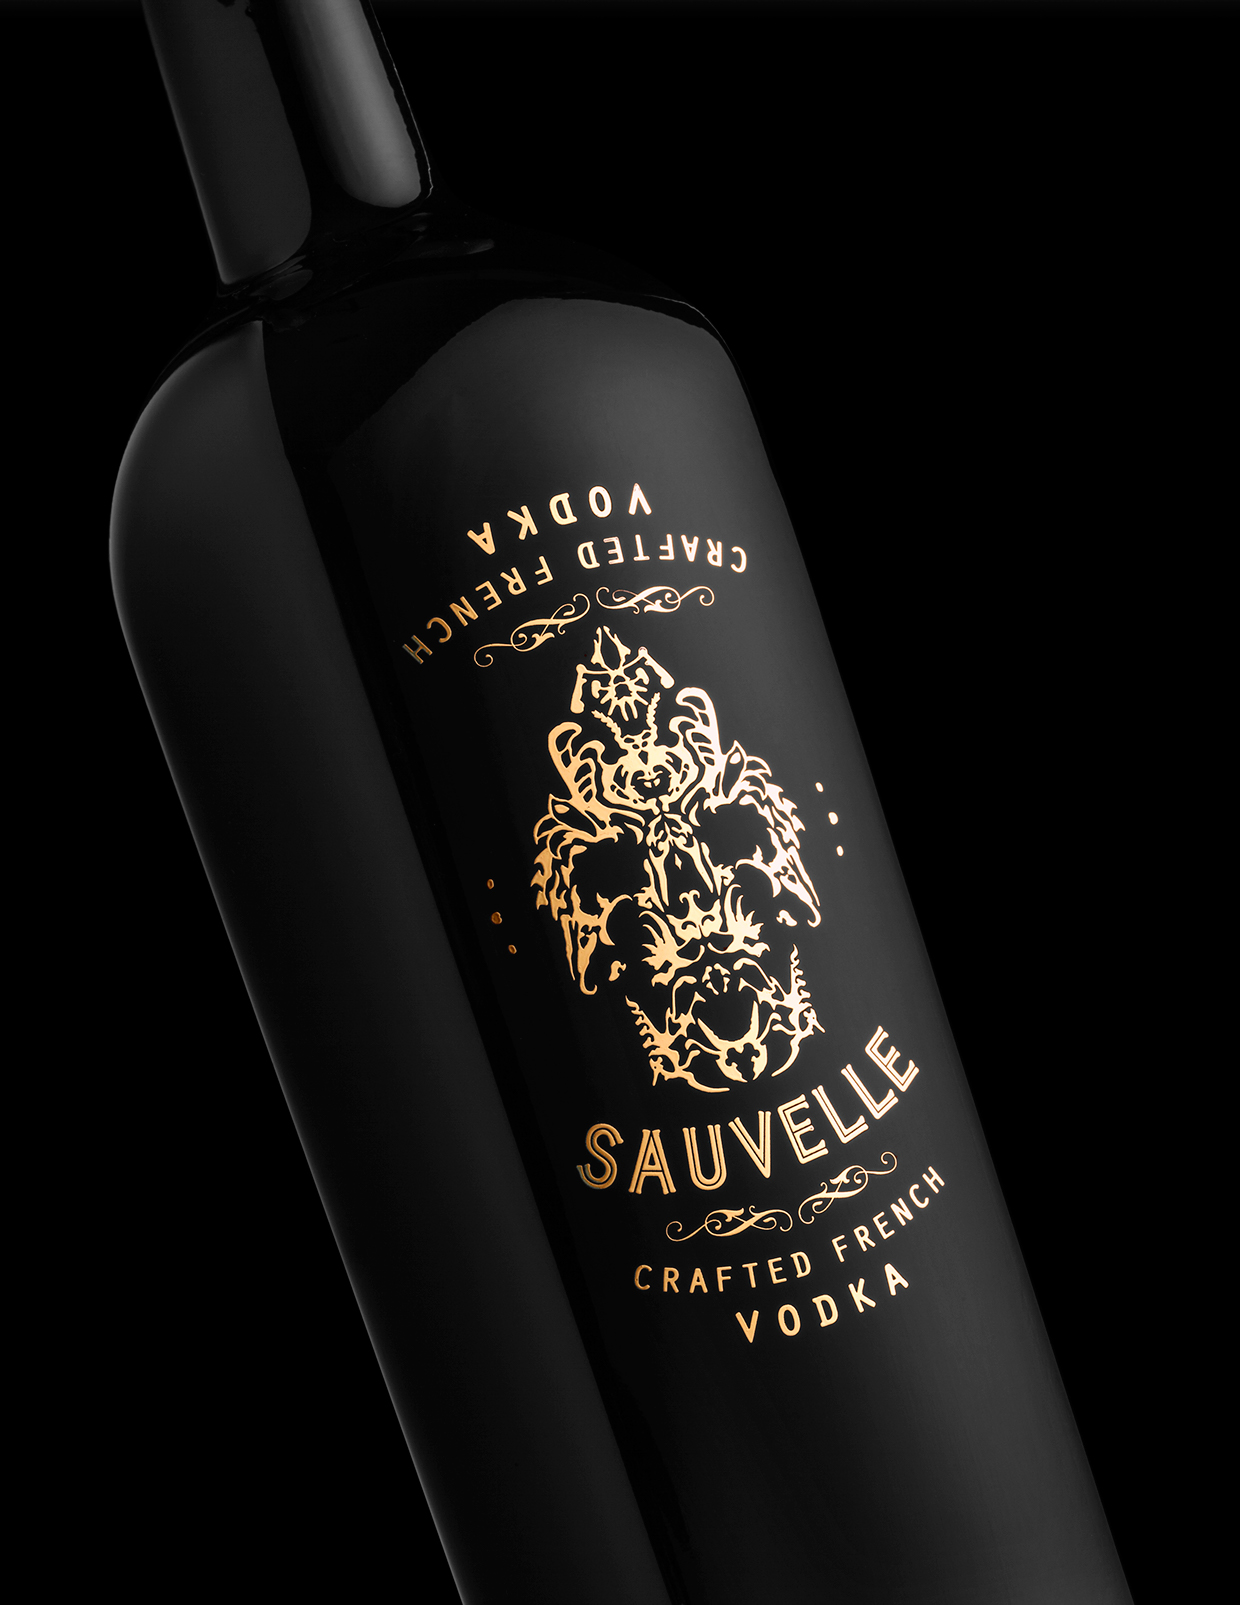 Sauville Vodka branding & package design by Stranger & Stranger in New York, NY USA